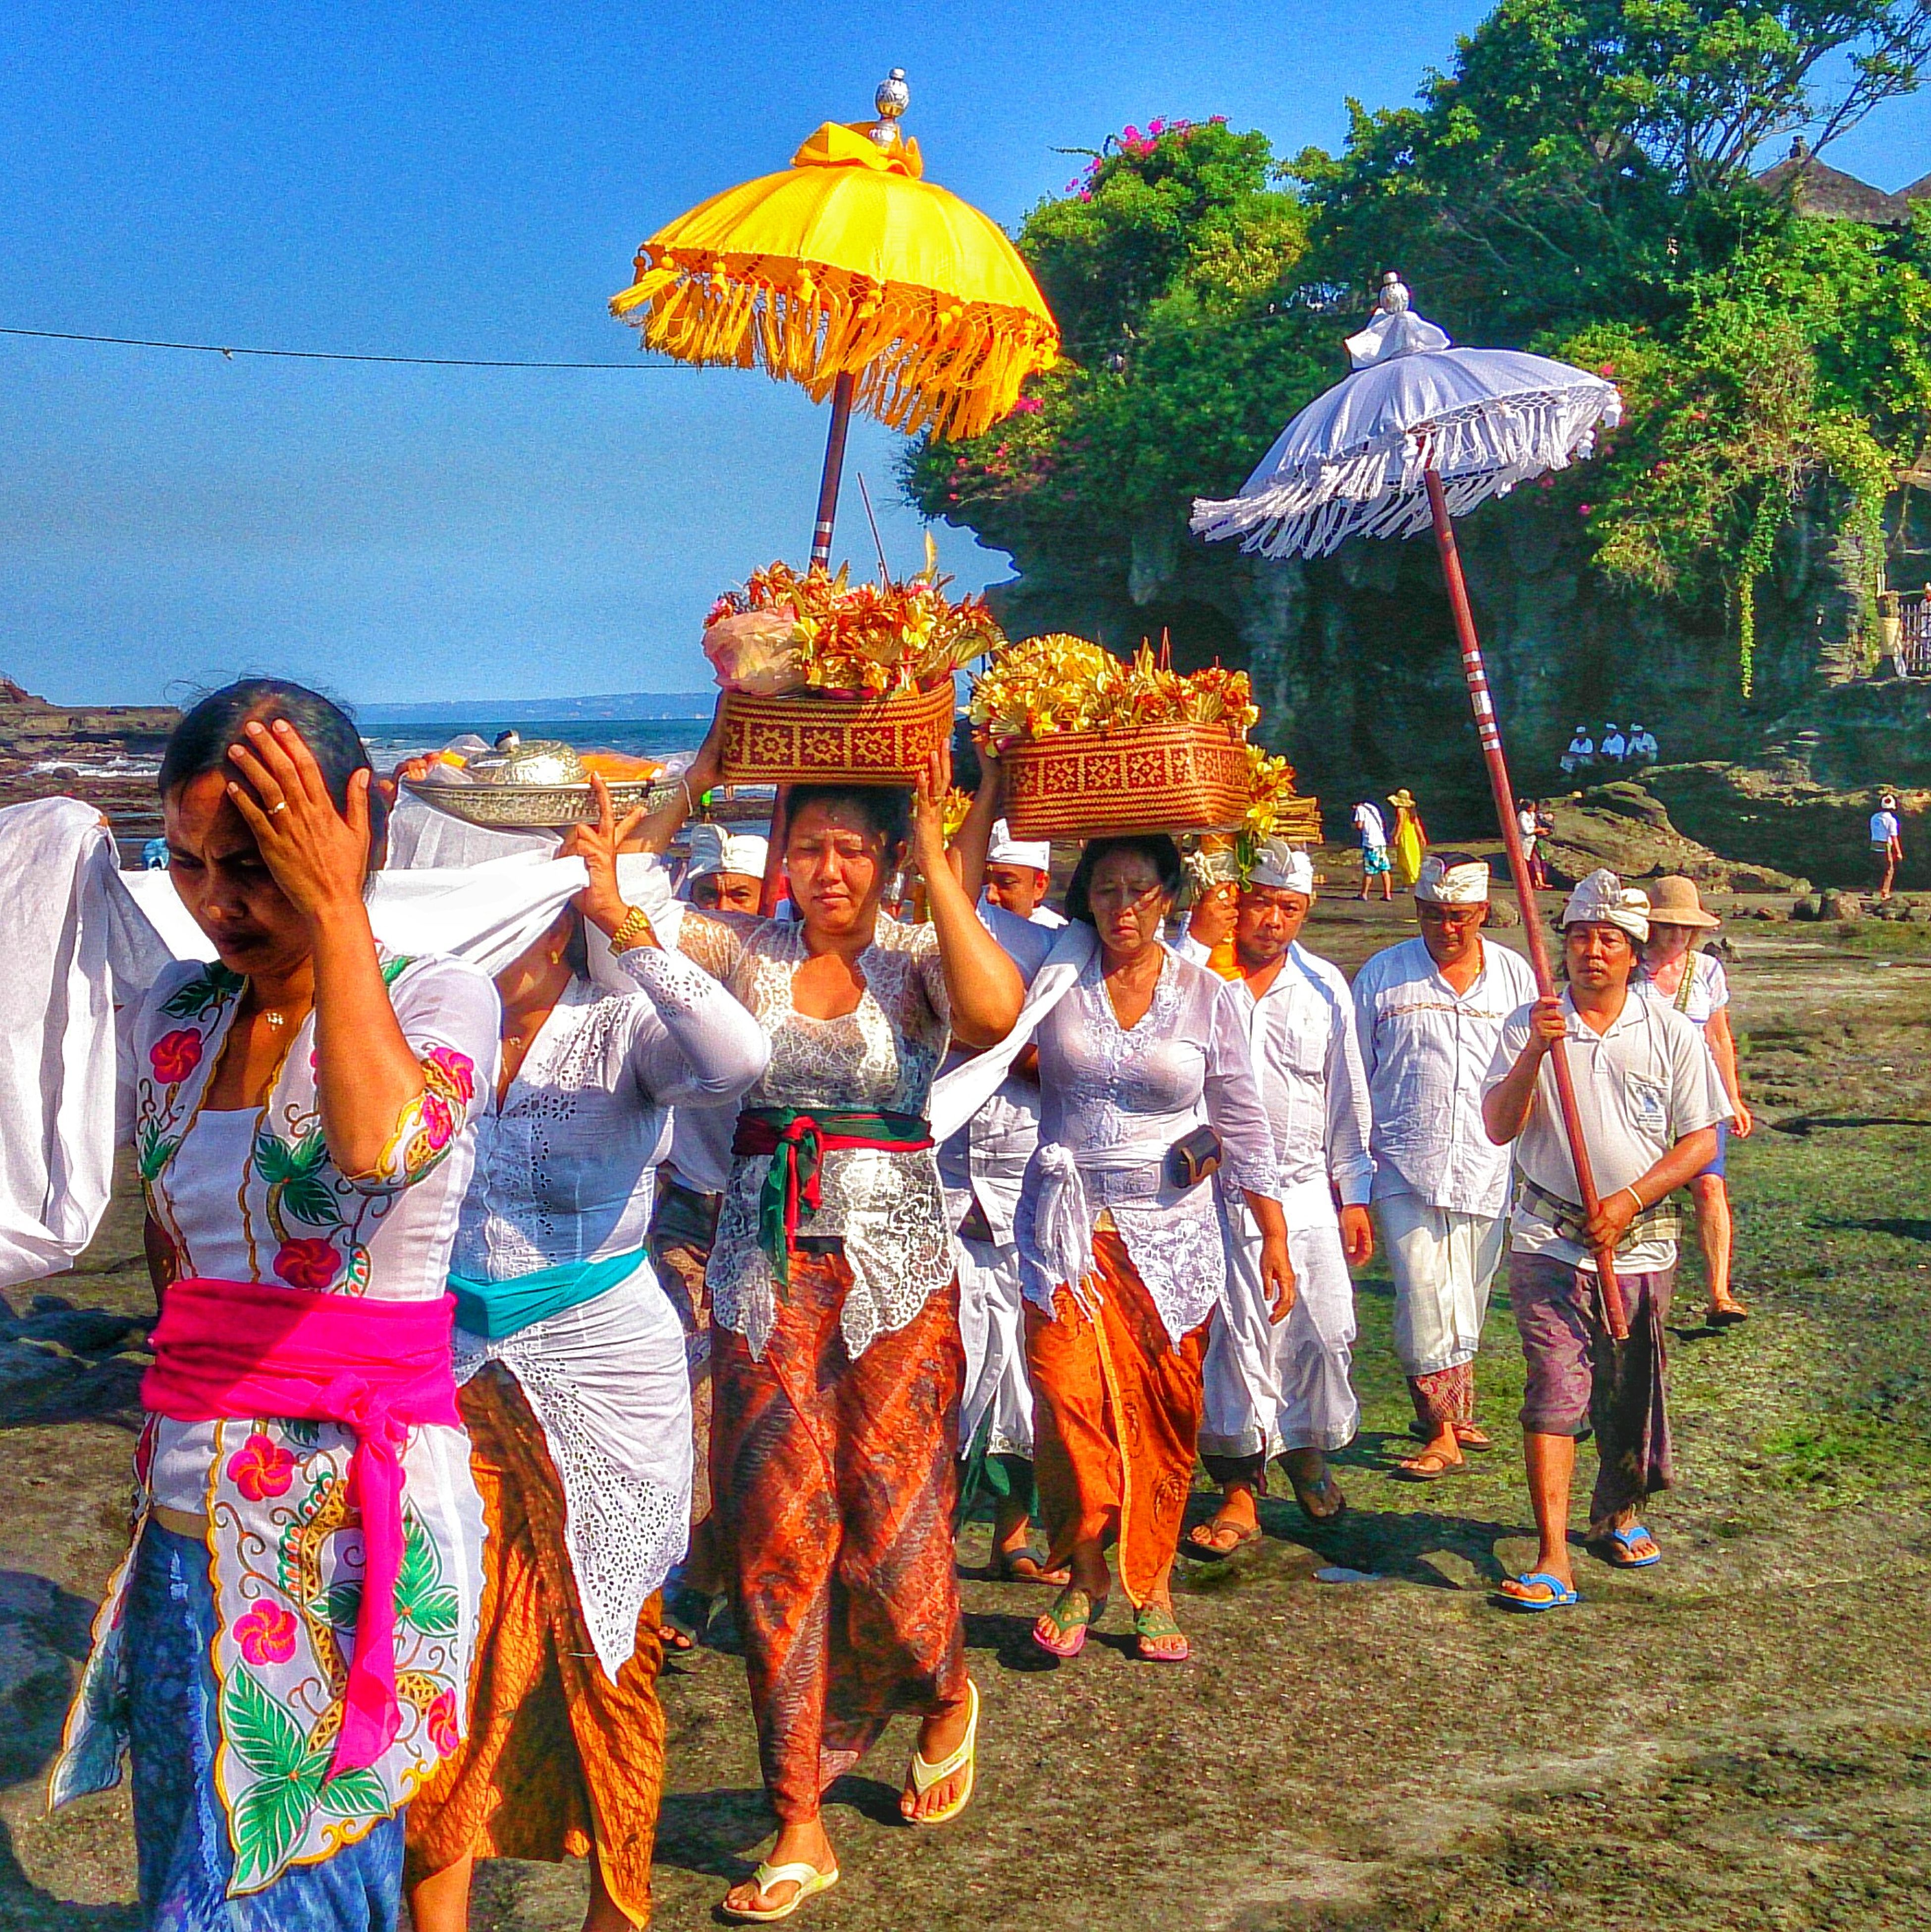 leisure activity, lifestyles, men, clear sky, tradition, sky, celebration, tree, casual clothing, cultures, person, standing, fun, blue, enjoyment, traditional clothing, arts culture and entertainment, day